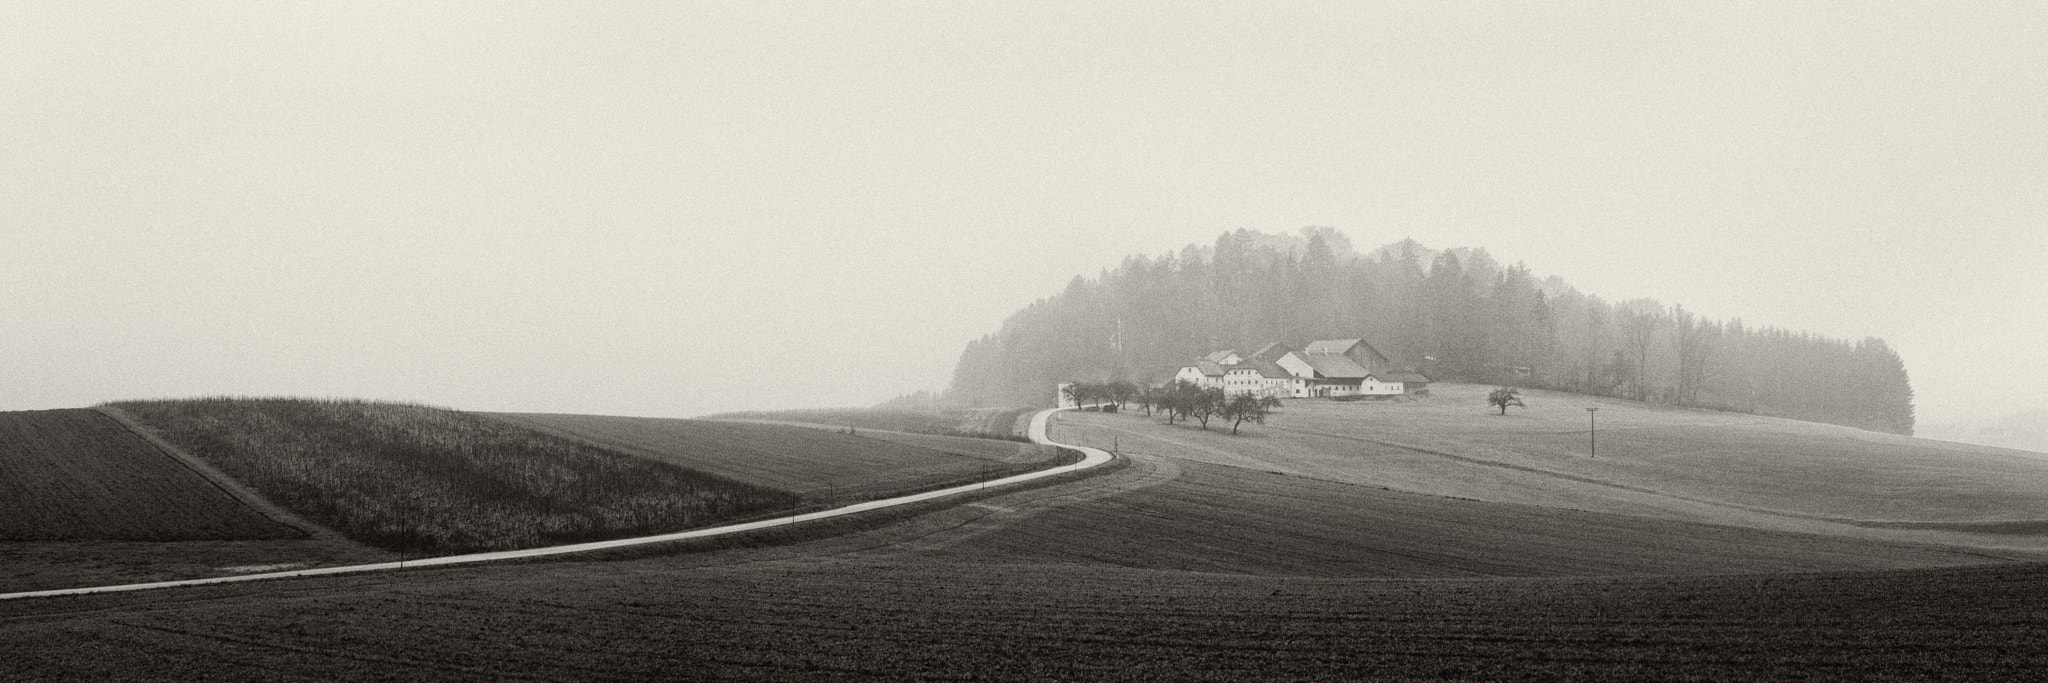 Photograph homeward (panorama) by Franz Bogner on 500px